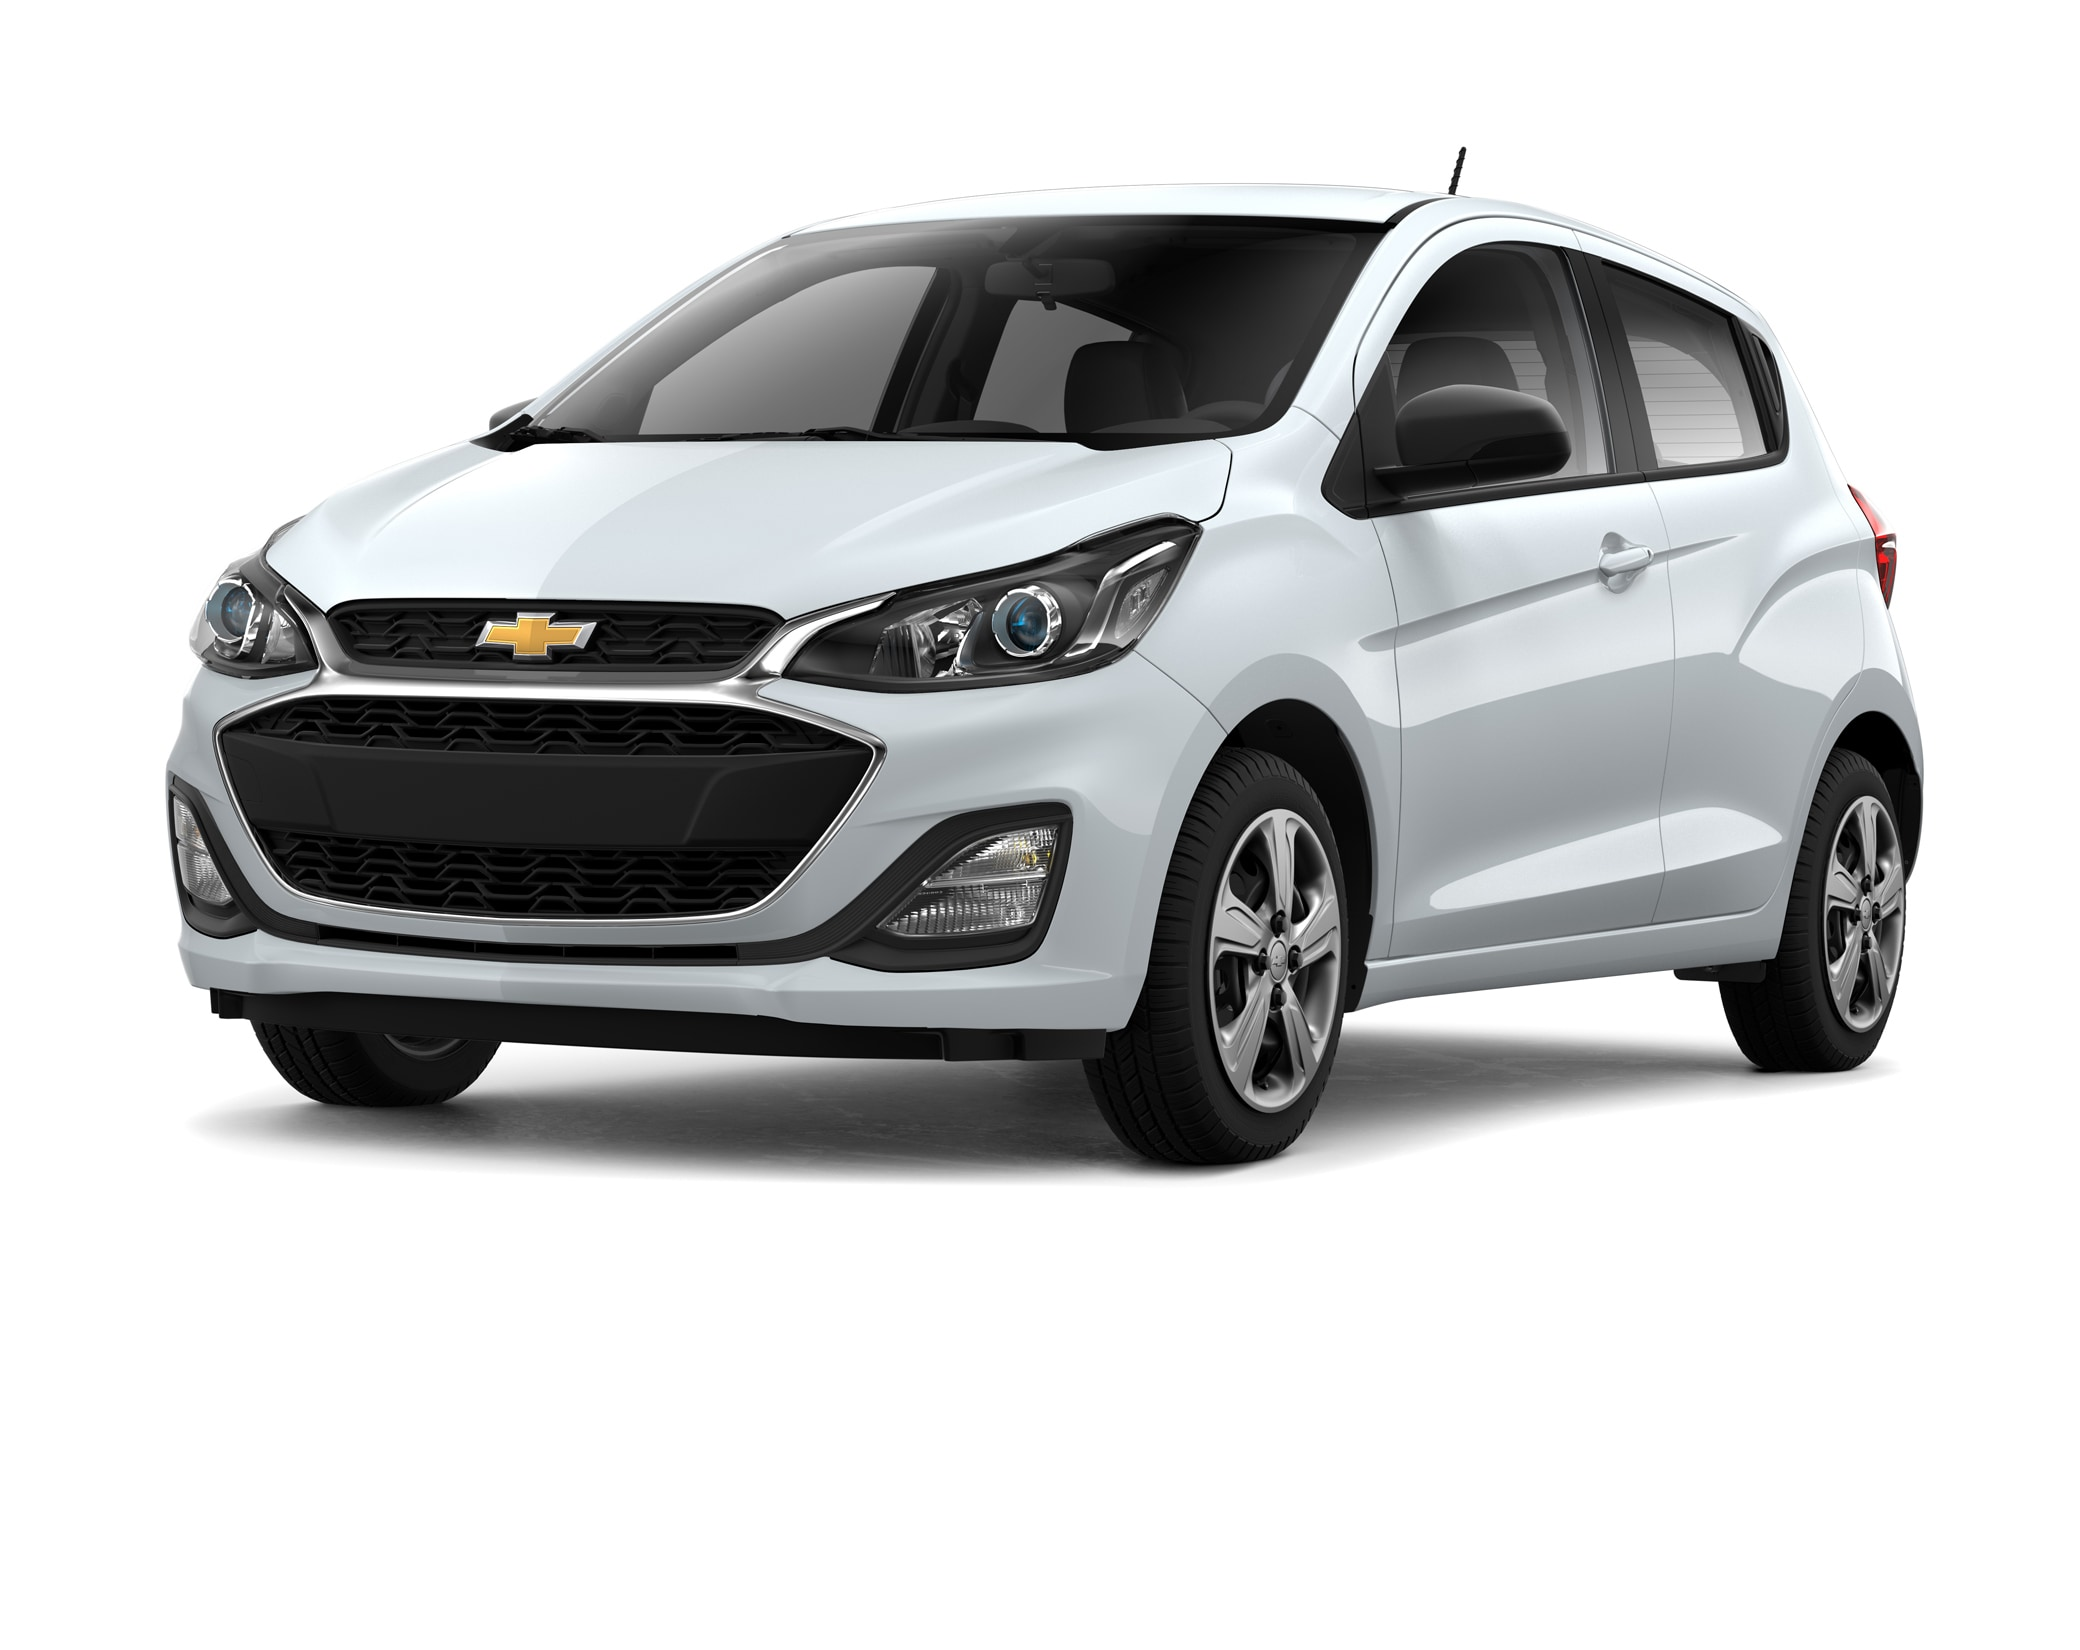 Chevrolet Spark in Vienna  VA   Koons Tysons Chevy Buick GMC View photos  watch videos and get a quote on a new 2019 Chevrolet Spark in  Vienna  VA